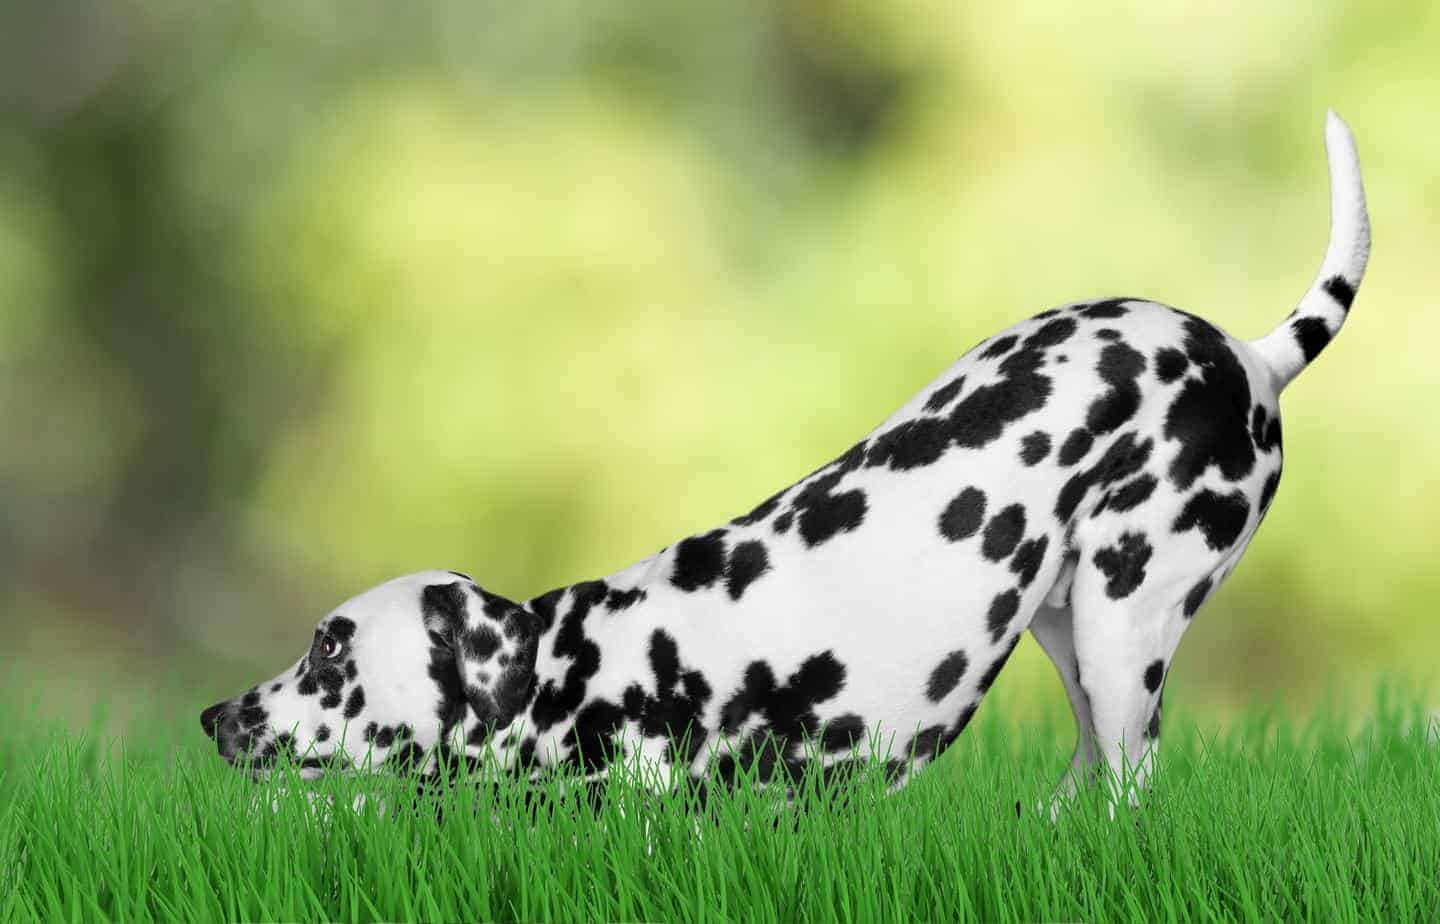 Dalmatian enjoys yard using a pet containment system. Pet containment systems offer an alternative to traditional fences meant to safeguard your pet.